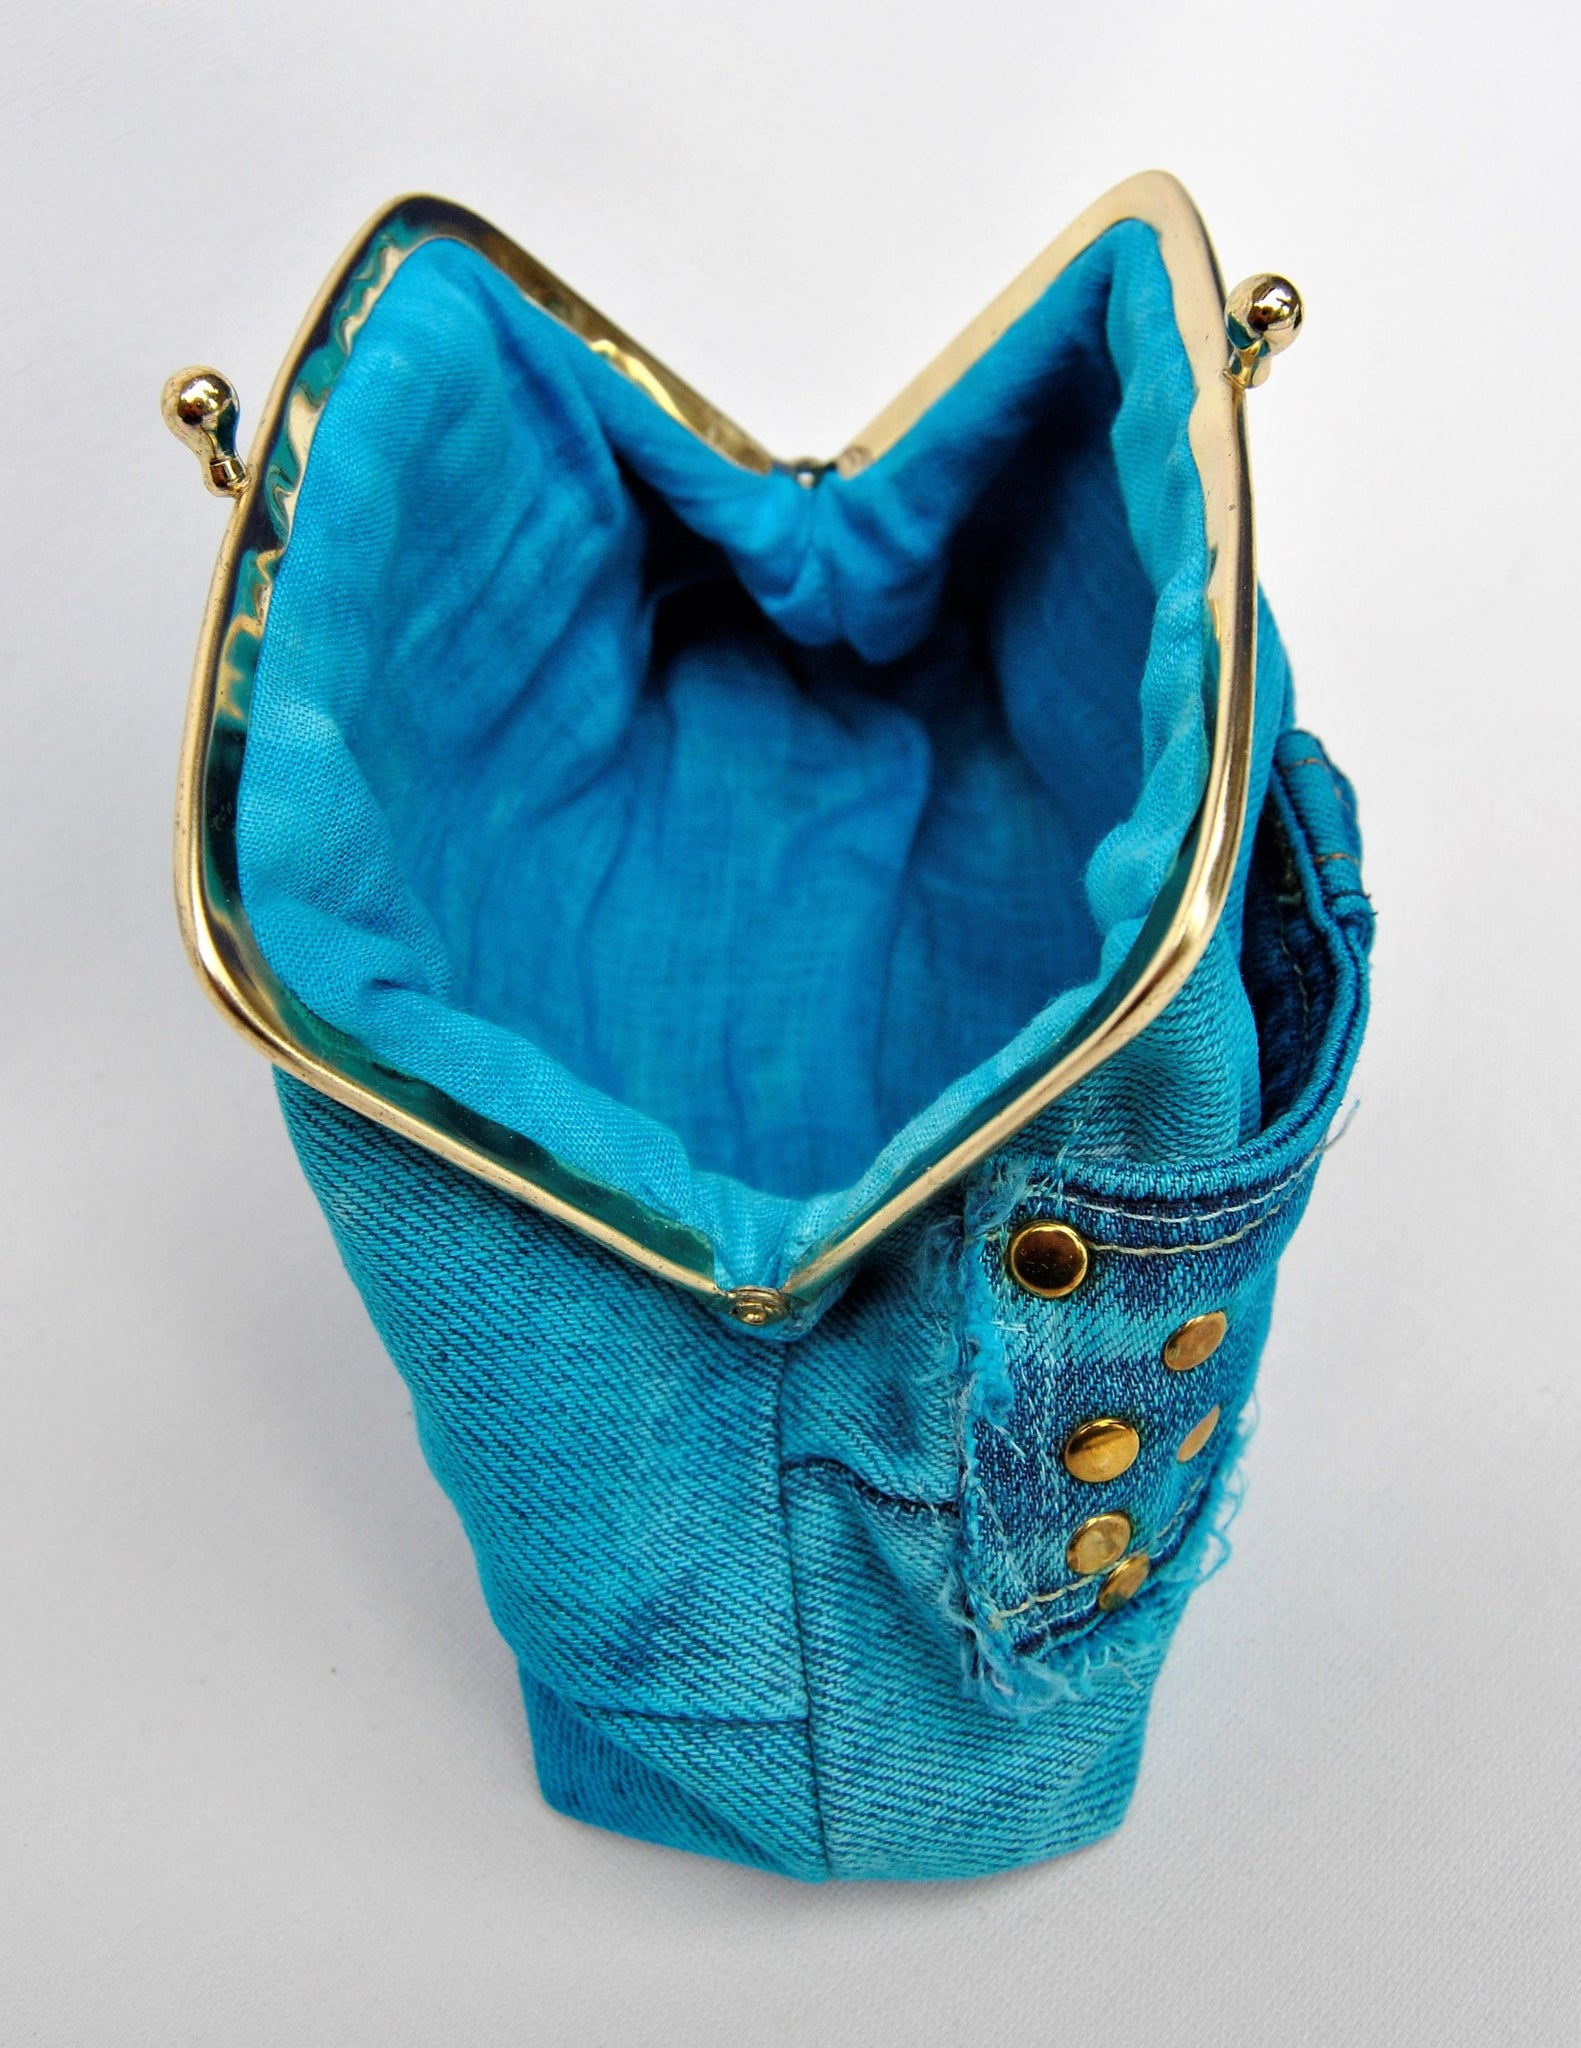 Turquoise purse vol 2